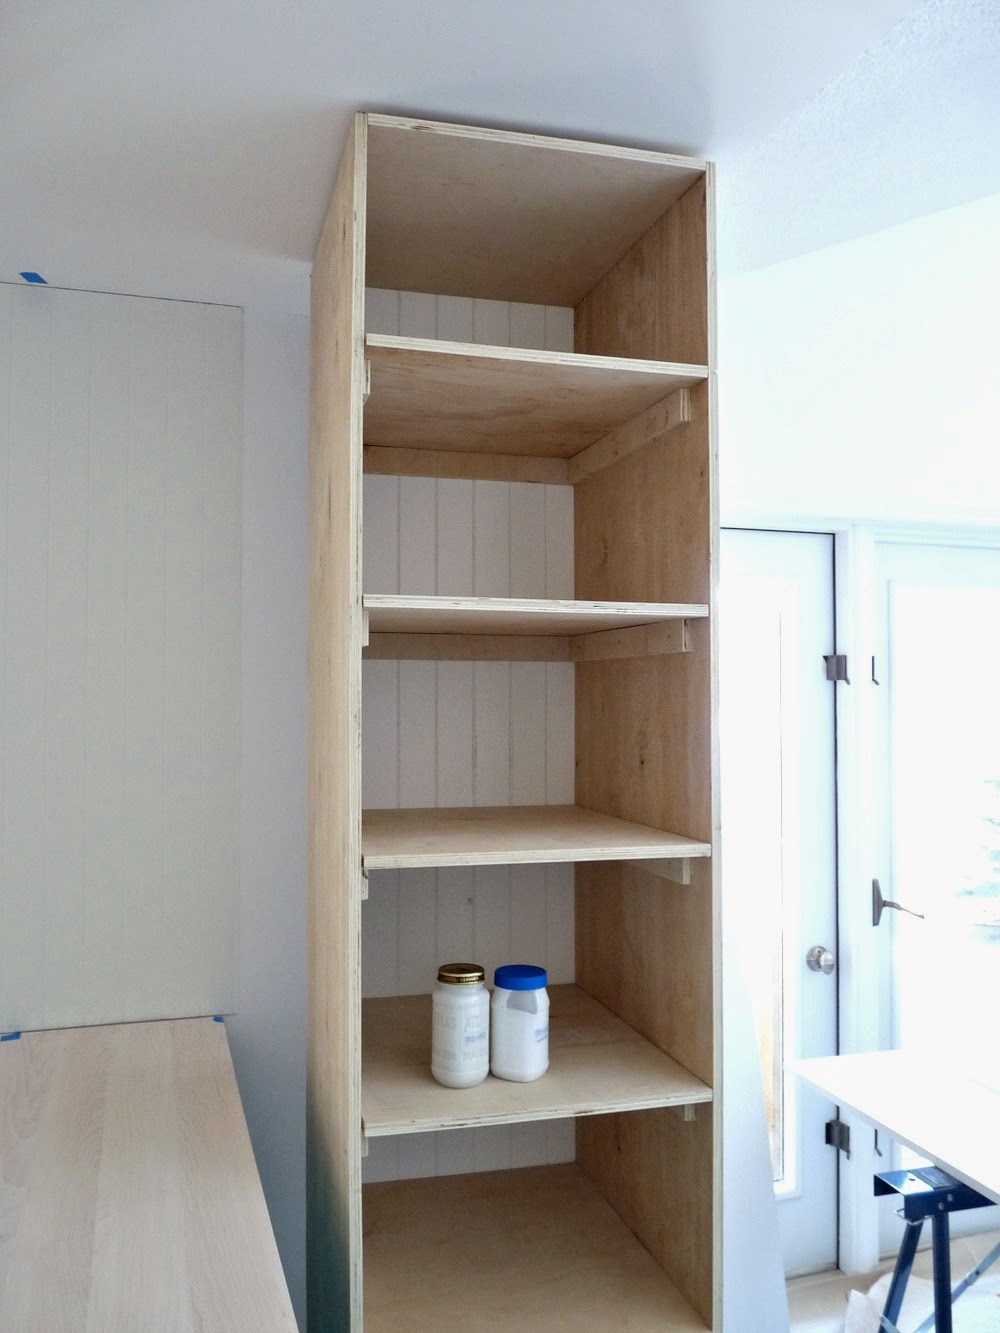 Charmant Kitchen Progress: DIY Pantry Cabinet + Working Around The Weirdness | Dans  Le Lakehouse